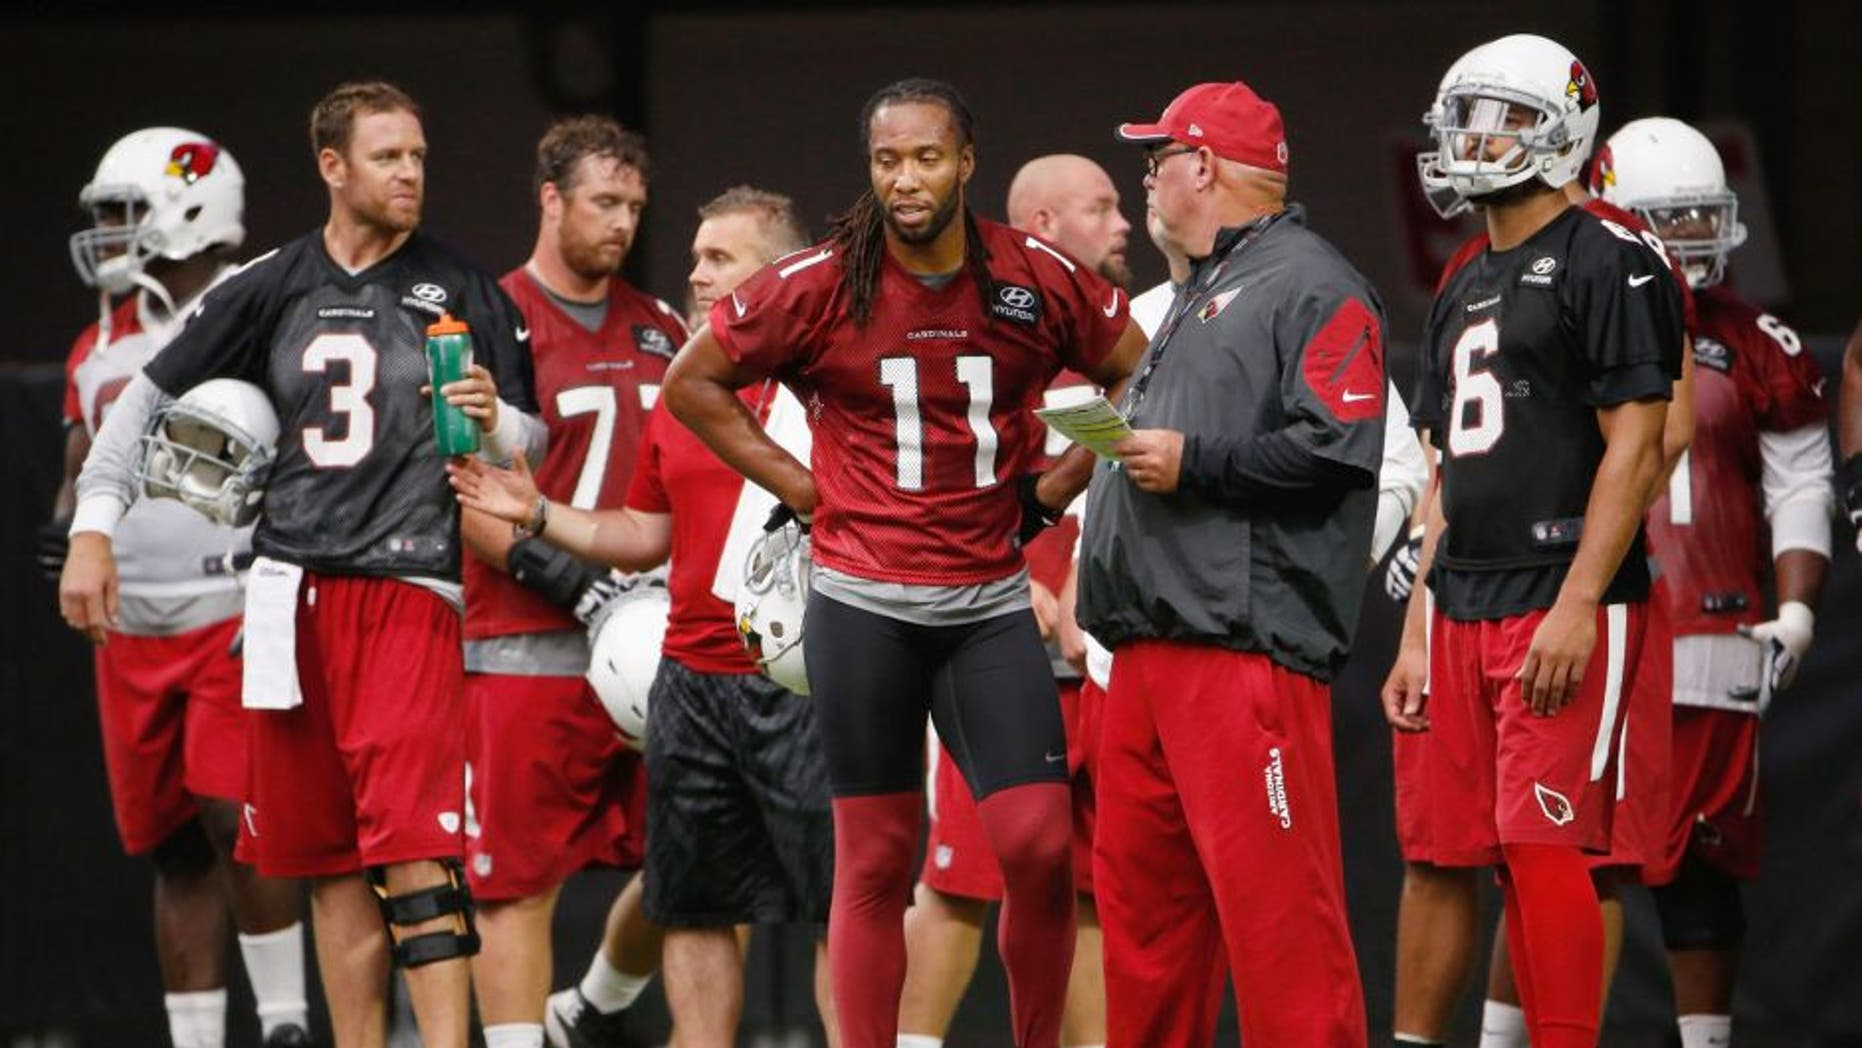 GLENDALE, AZ - AUGUST 02: (L-R) Carson Palmer #3, Larry Fitzgerald #11, Bruce Arians and Logan Thomas #6 of the Arizona Cardinals stand on the field during the team training camp at University of Phoenix Stadium on August 2, 2015 in Glendale, Arizona. (Photo by Christian Petersen/Getty Images)